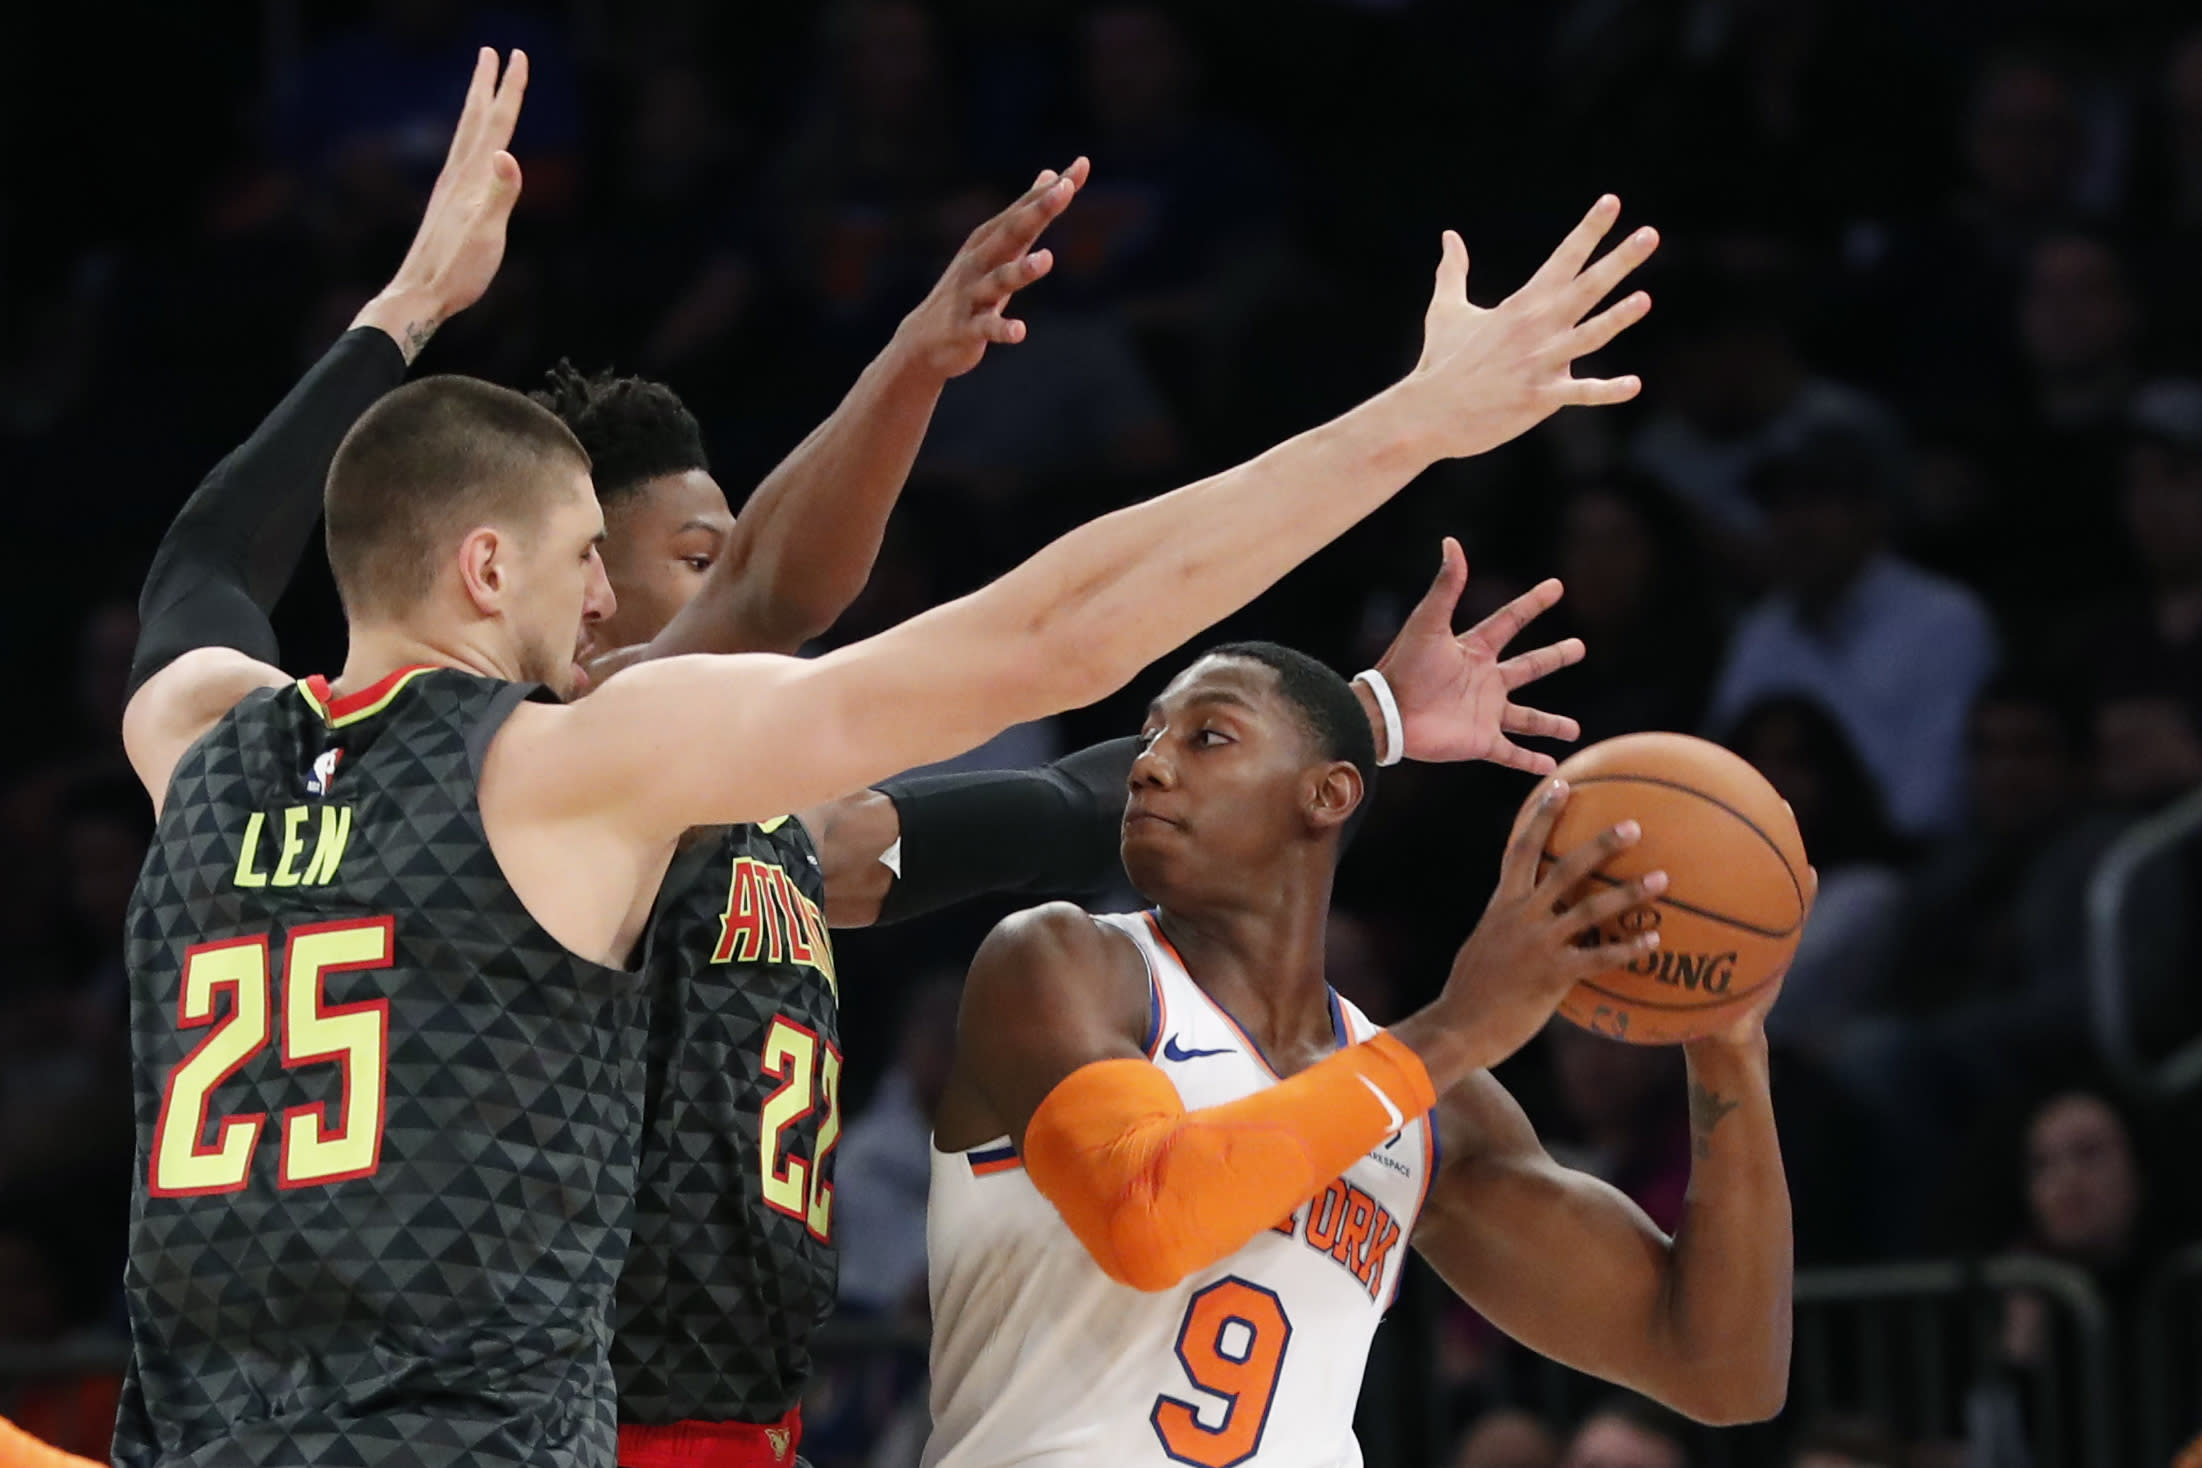 New York Knicks forward RJ Barrett (9) looks to pass with Atlanta Hawks forward Cam Reddish (22) and Hawks center Alex Len (25) defending during the first half of a preseason NBA basketball game in New York, Wednesday, Oct. 16, 2019. (AP Photo/Kathy Willens)